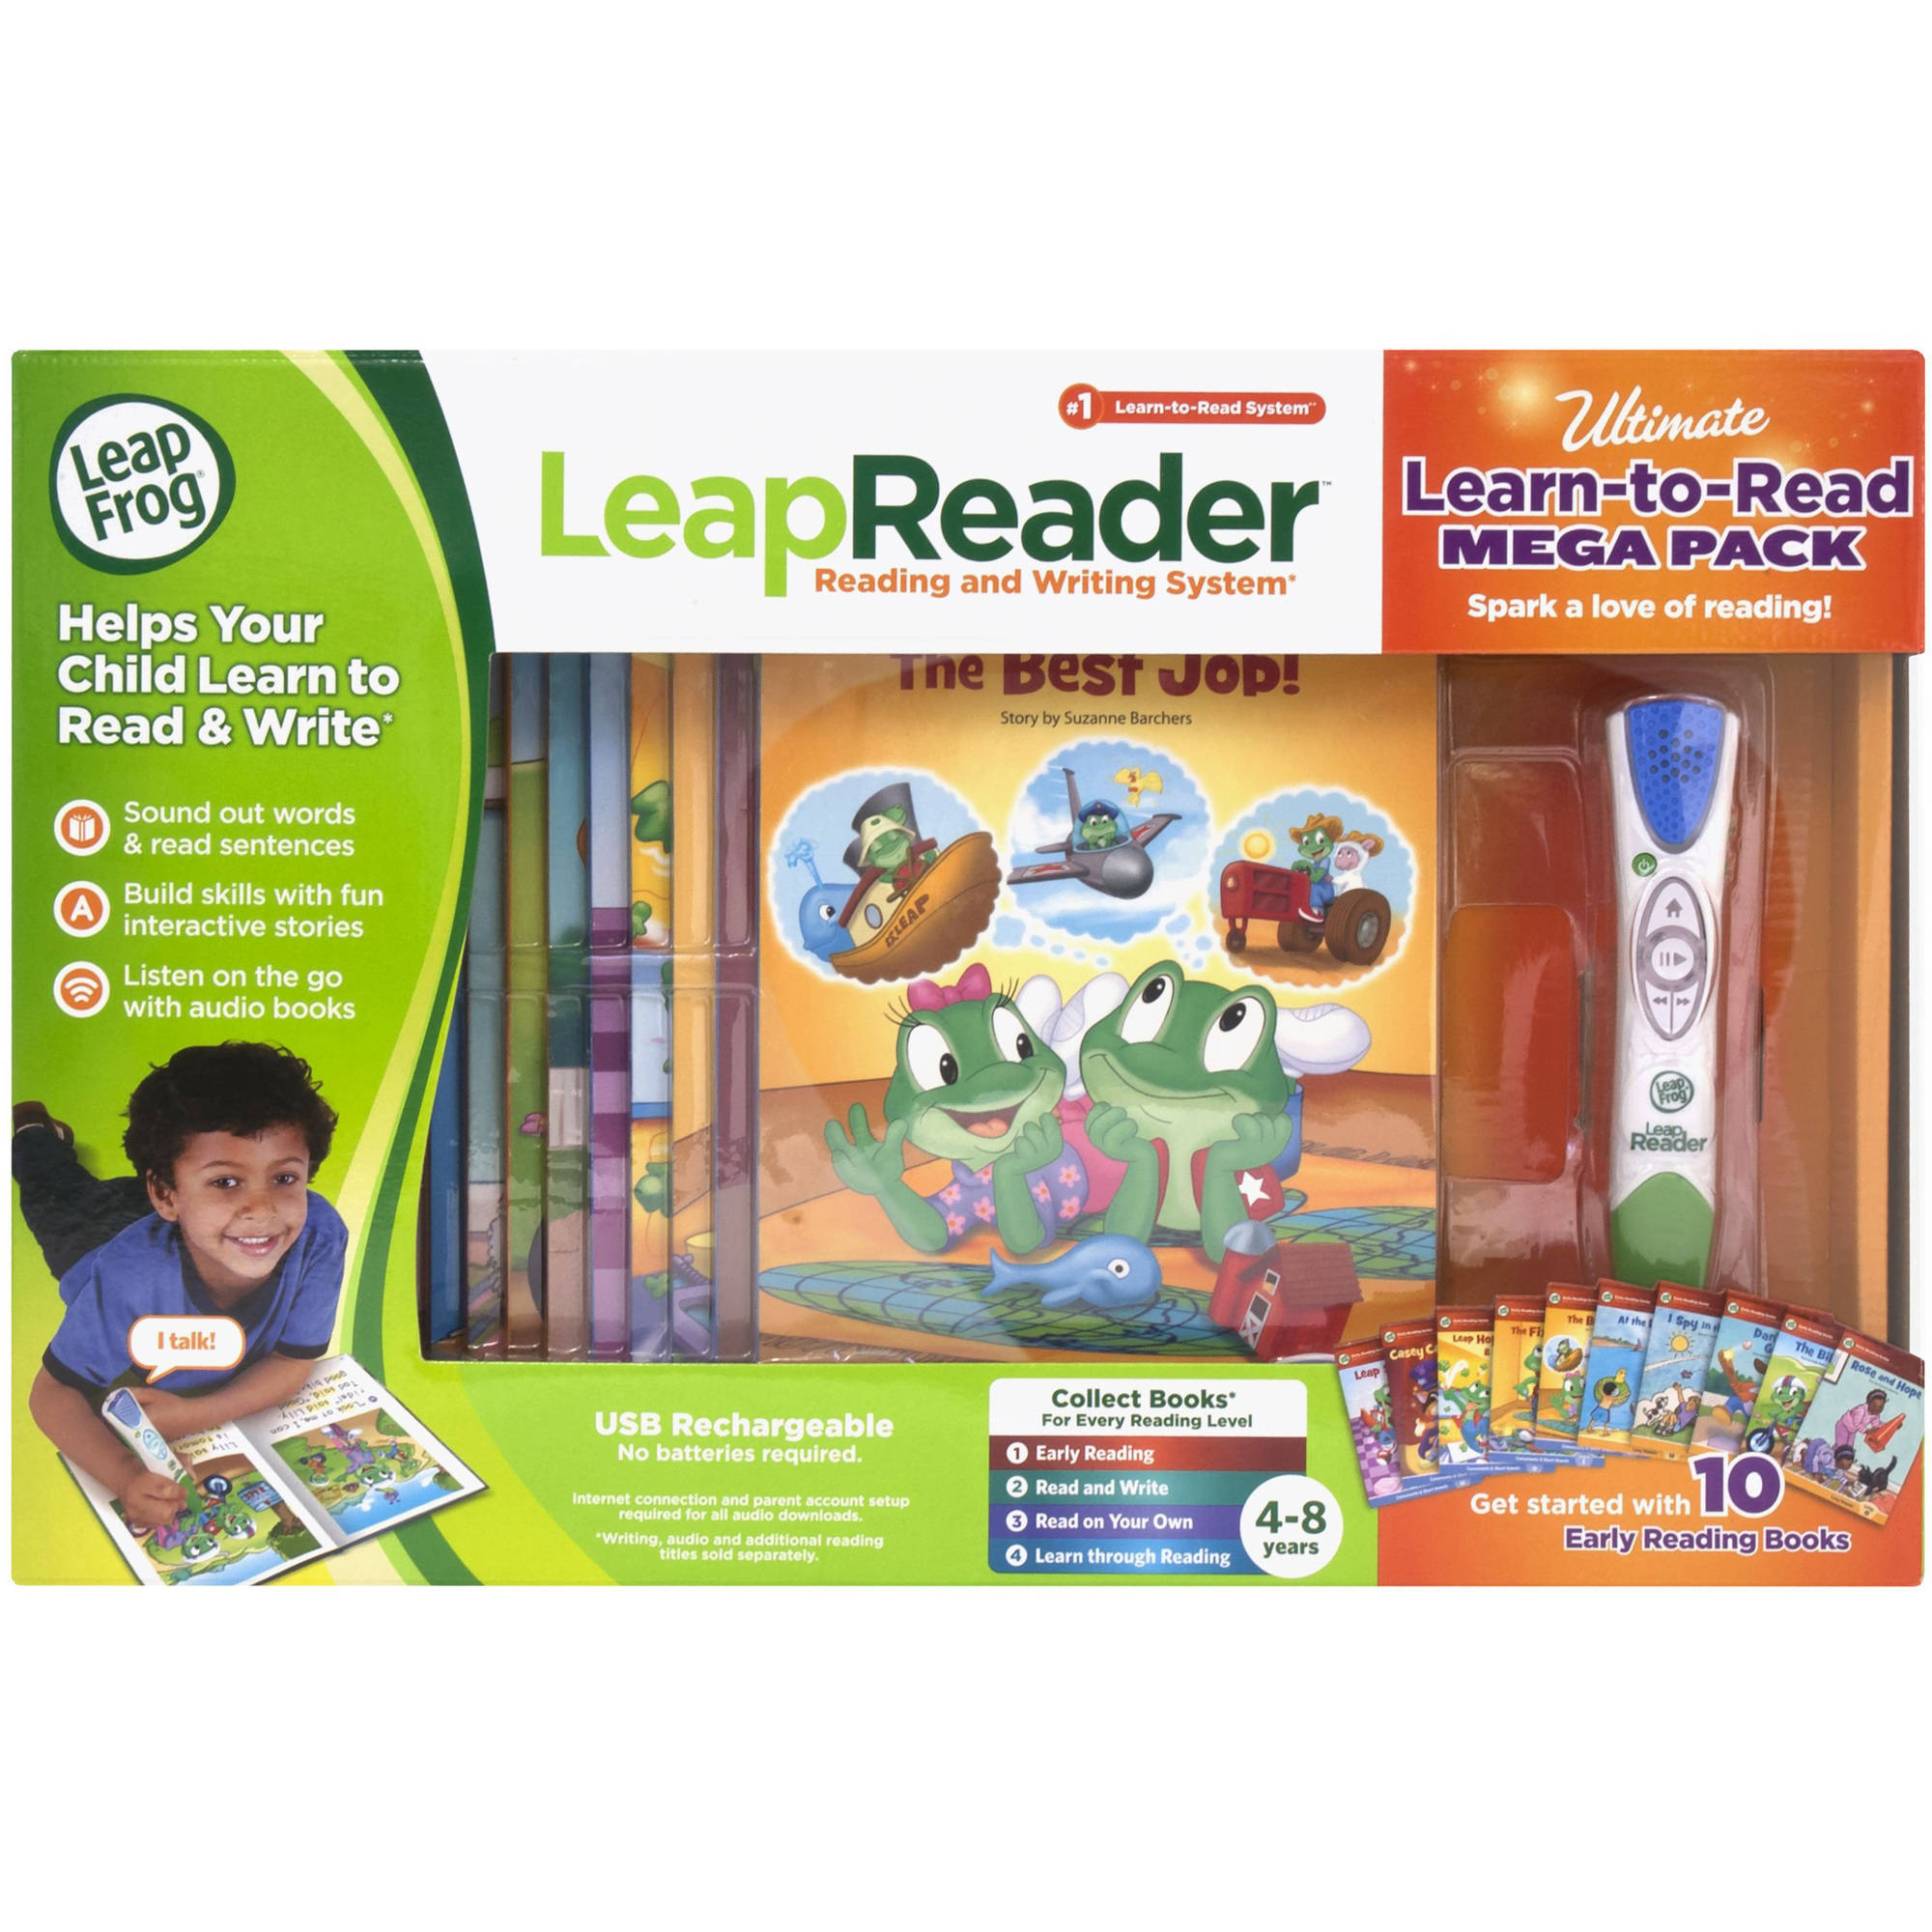 For older kids, LeapFrog has a great variety of learning tools in different platforms, from Learning tablets to reading and gaming systems: LeapPad Ultra, LeapReader, LeapPad2, LeapsterGS Explorer, LeapReader Junior, Leapster Explorer.